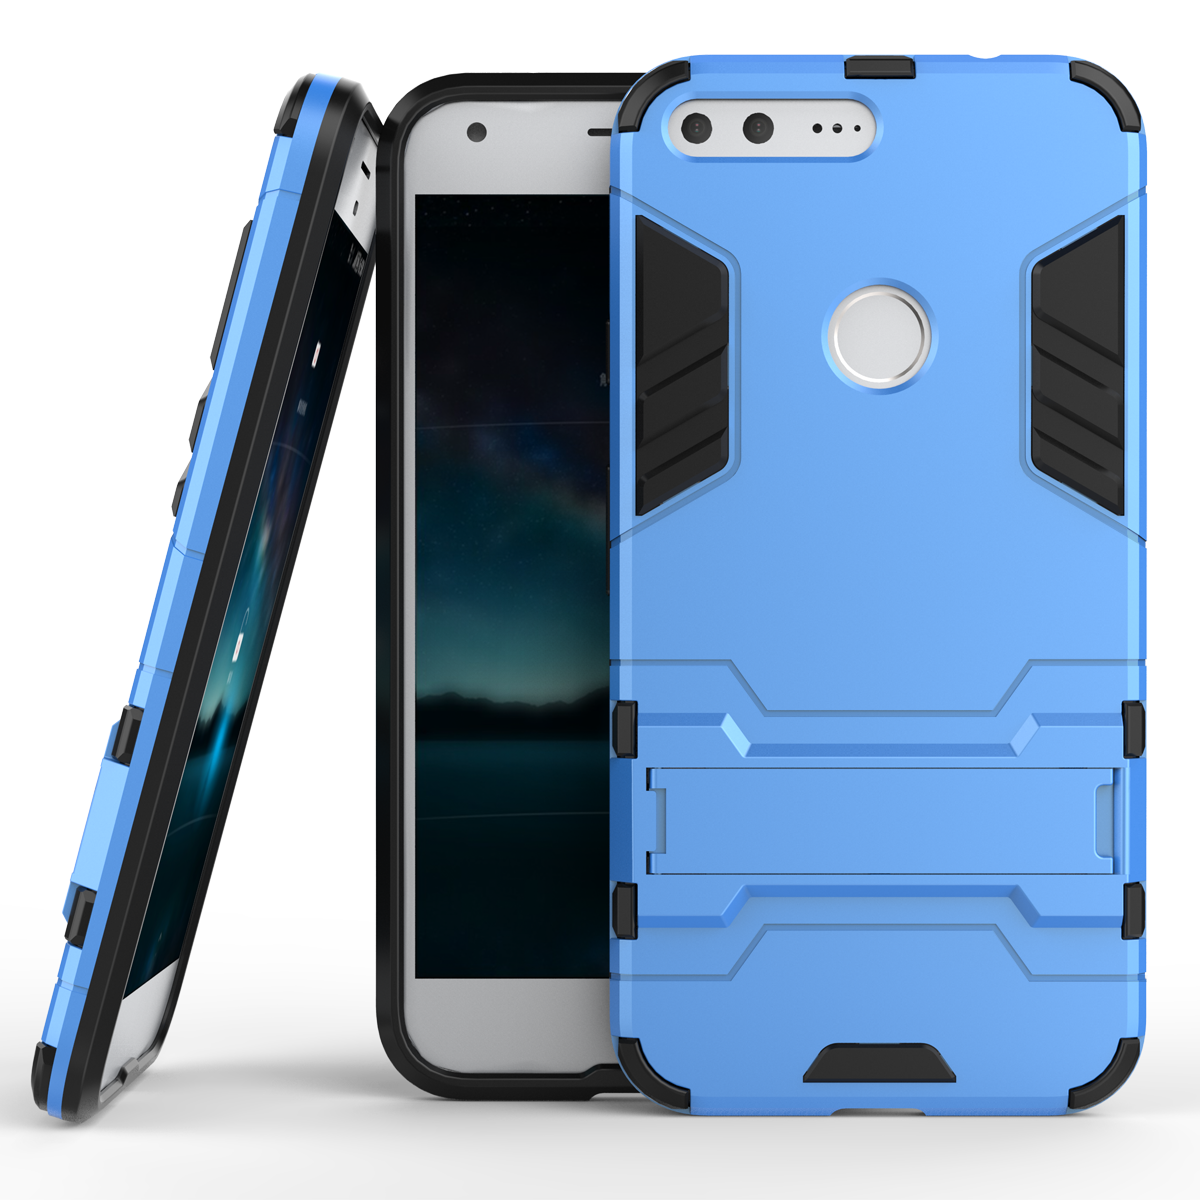 Mor defender kickstand protective cover case for google pixel xl 5 5inch blue p20161031151710650